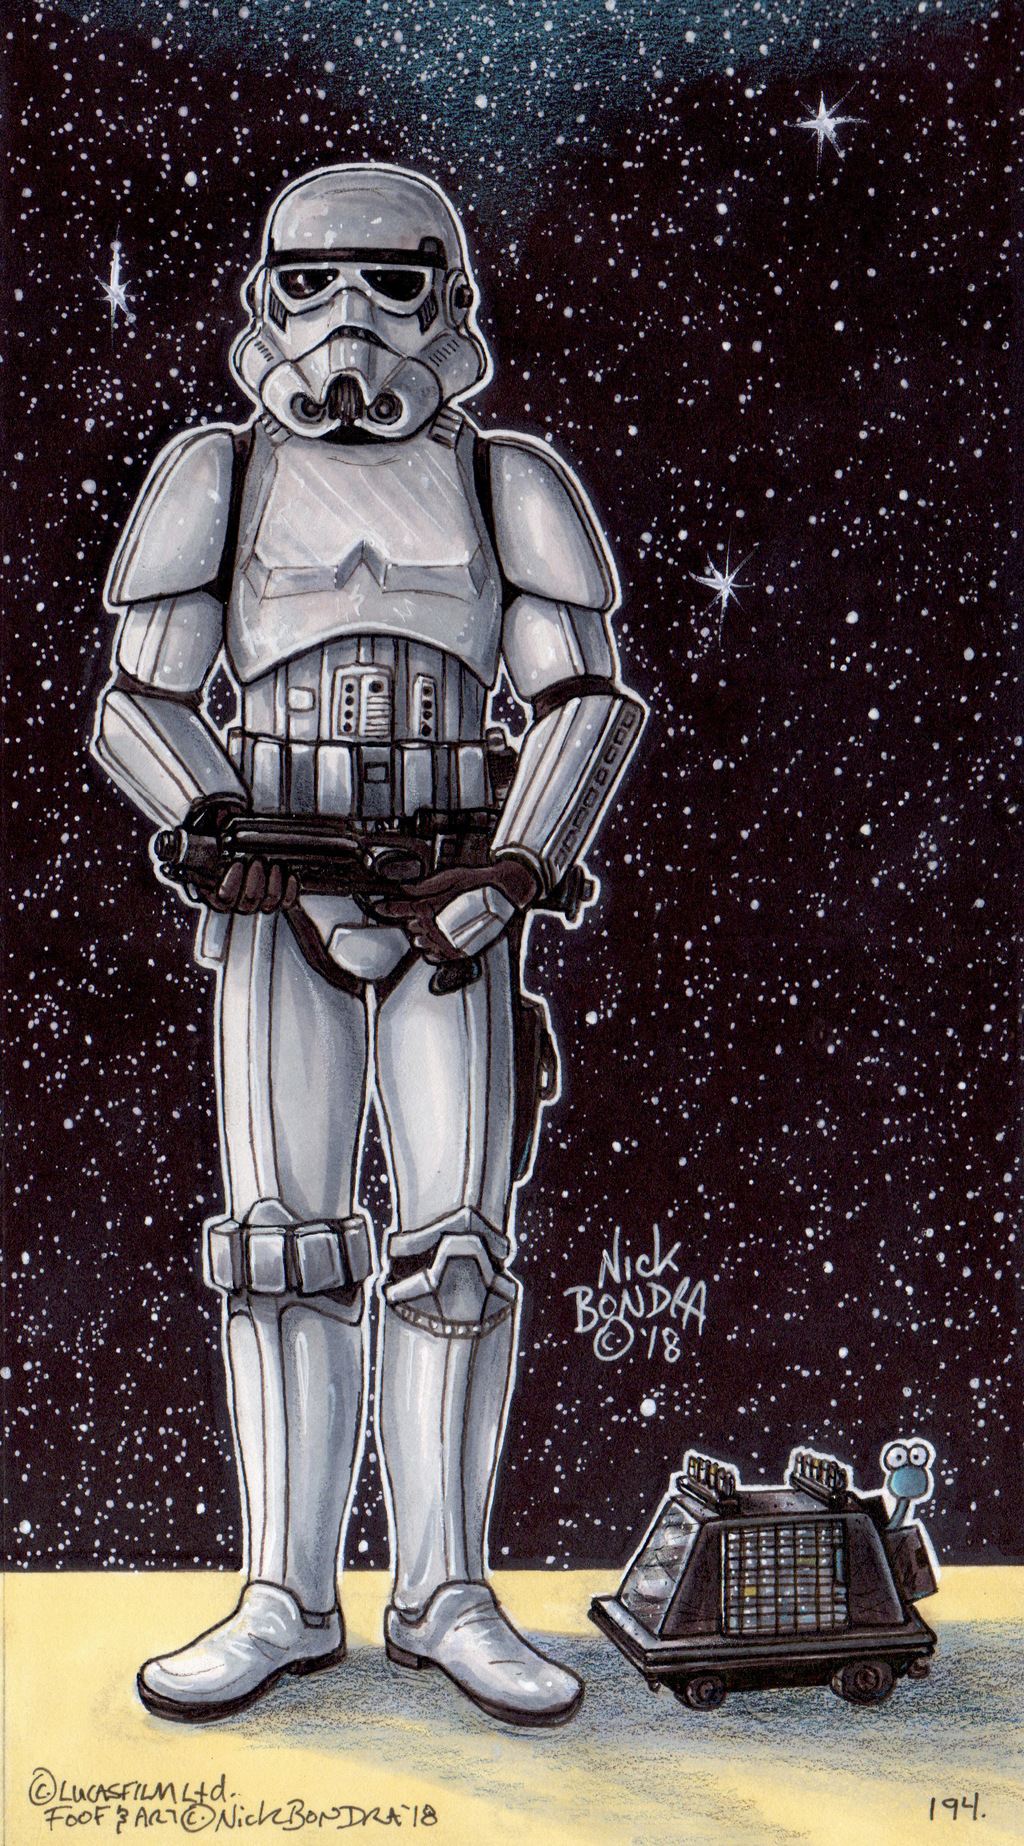 TK-421 and MSE-6-G735Y